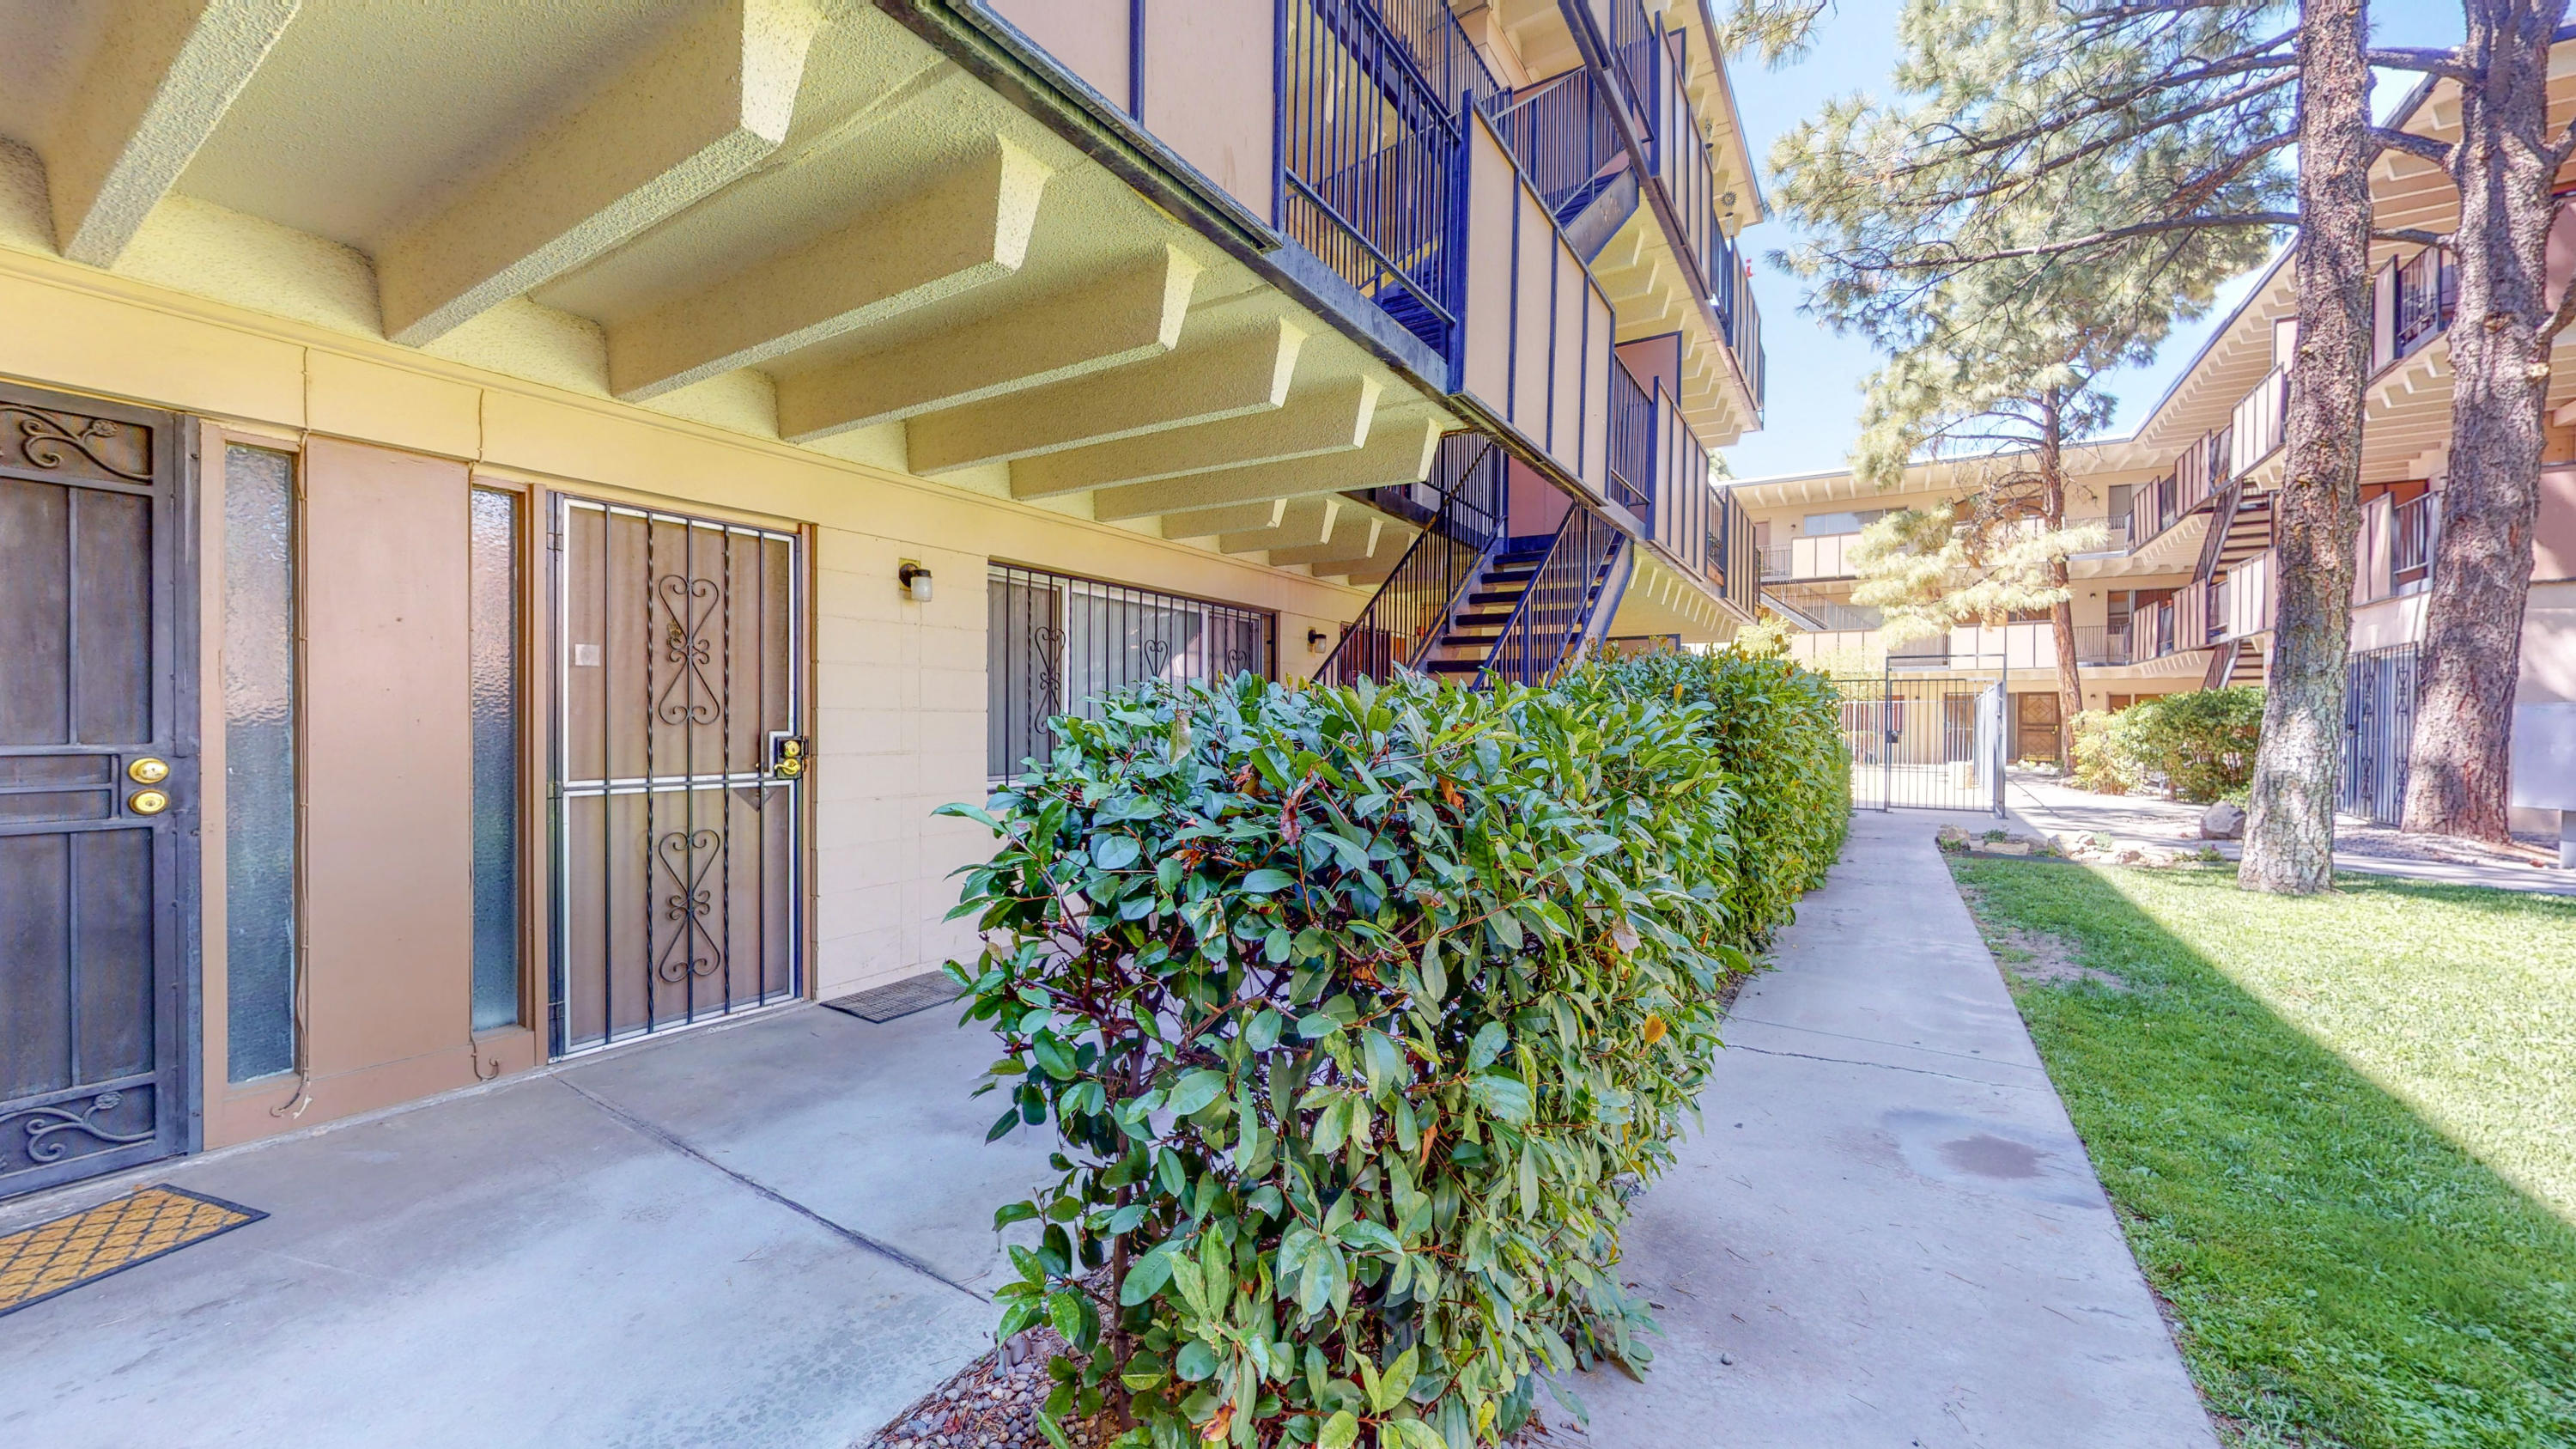 This is a really cool little condo, homeowner has remodeled the bathroom added new carpet and repaired the windows, this condo has a great view and is in a location that is perfect for medical, military, airline, college student or a small starter family. it is a gated community with private parking, wonderful little investment property, wonderful starter home and wonderful business stay. It is in great condition and a must see.